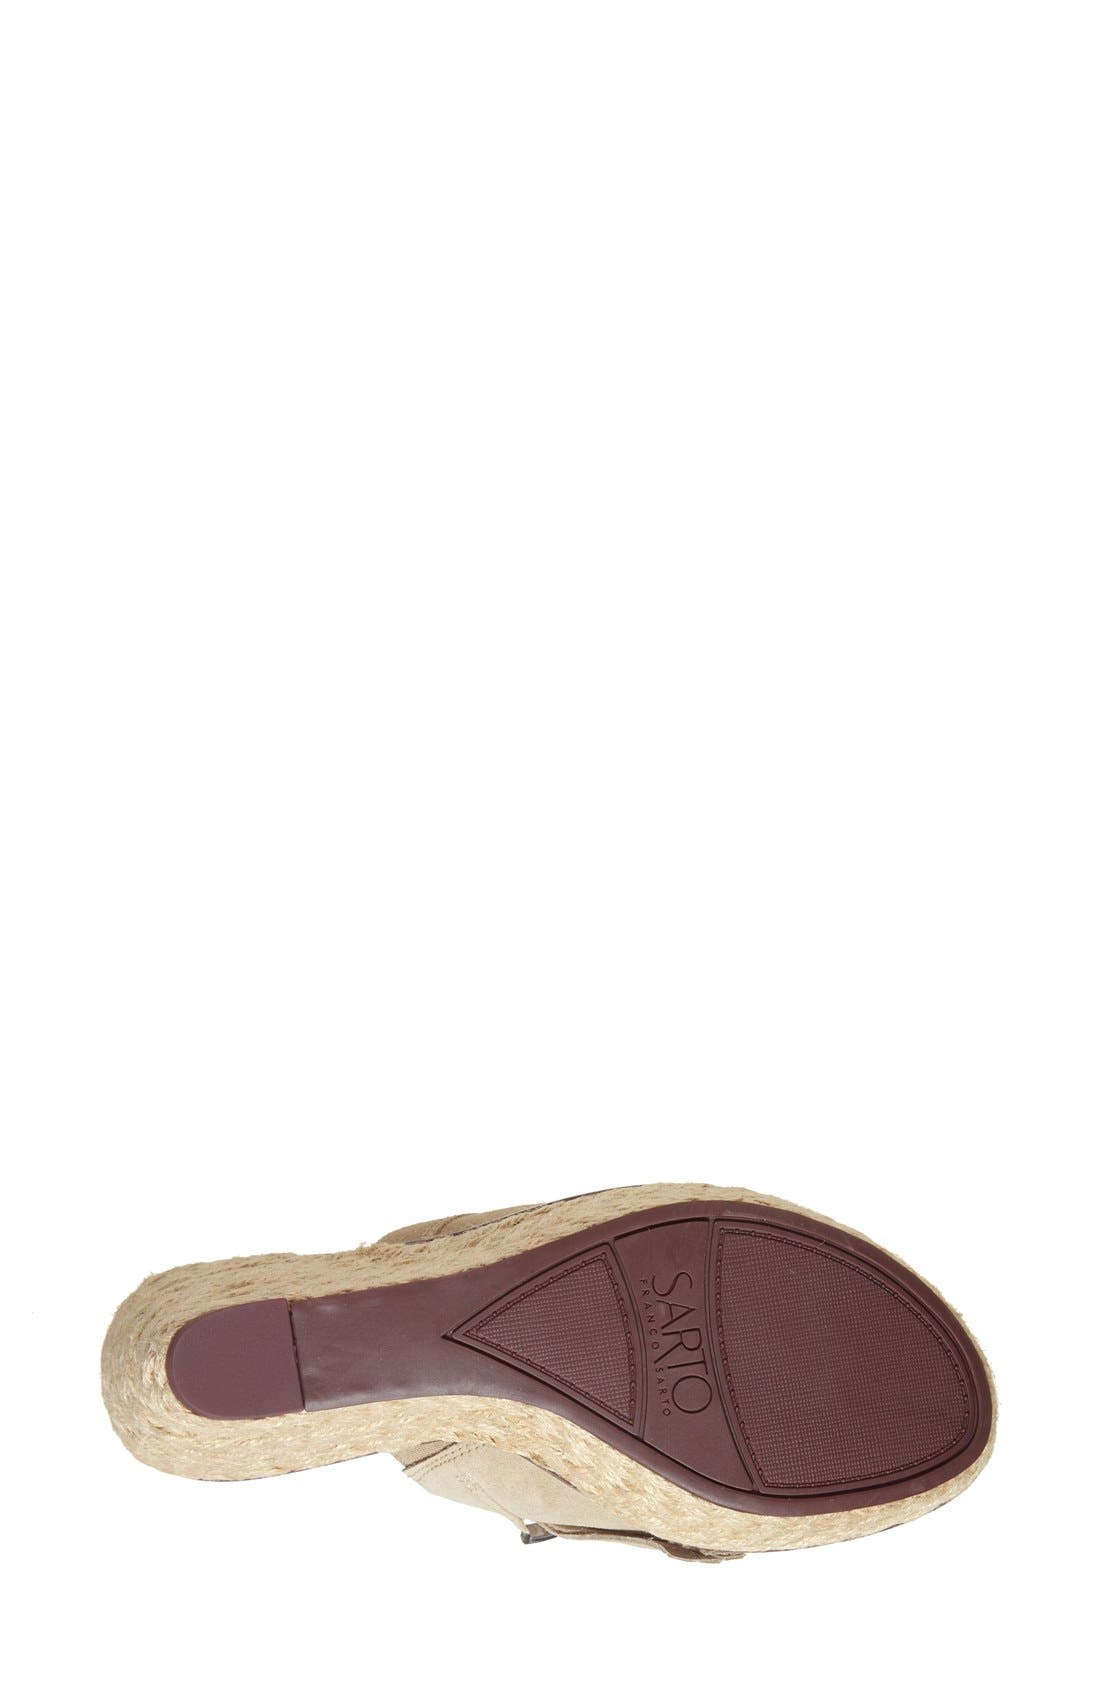 'Candace' Wedge Mule,                             Alternate thumbnail 4, color,                             Soft Tan Kid Suede